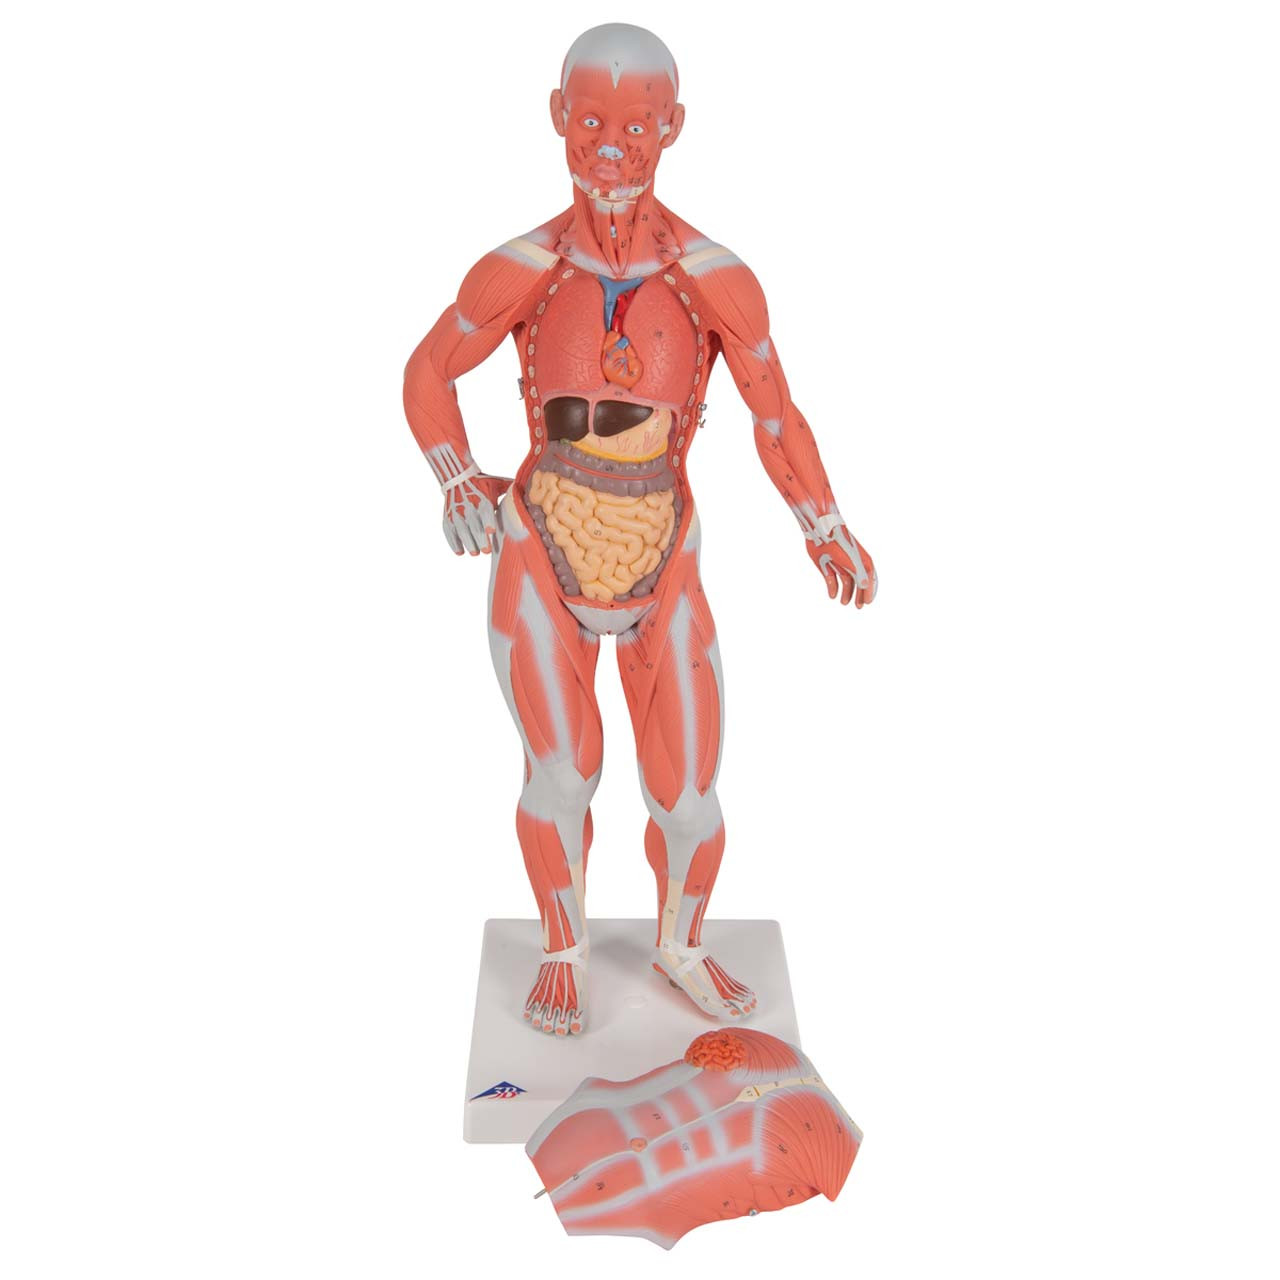 1/3 Life-Size Muscle Figure, 2-part